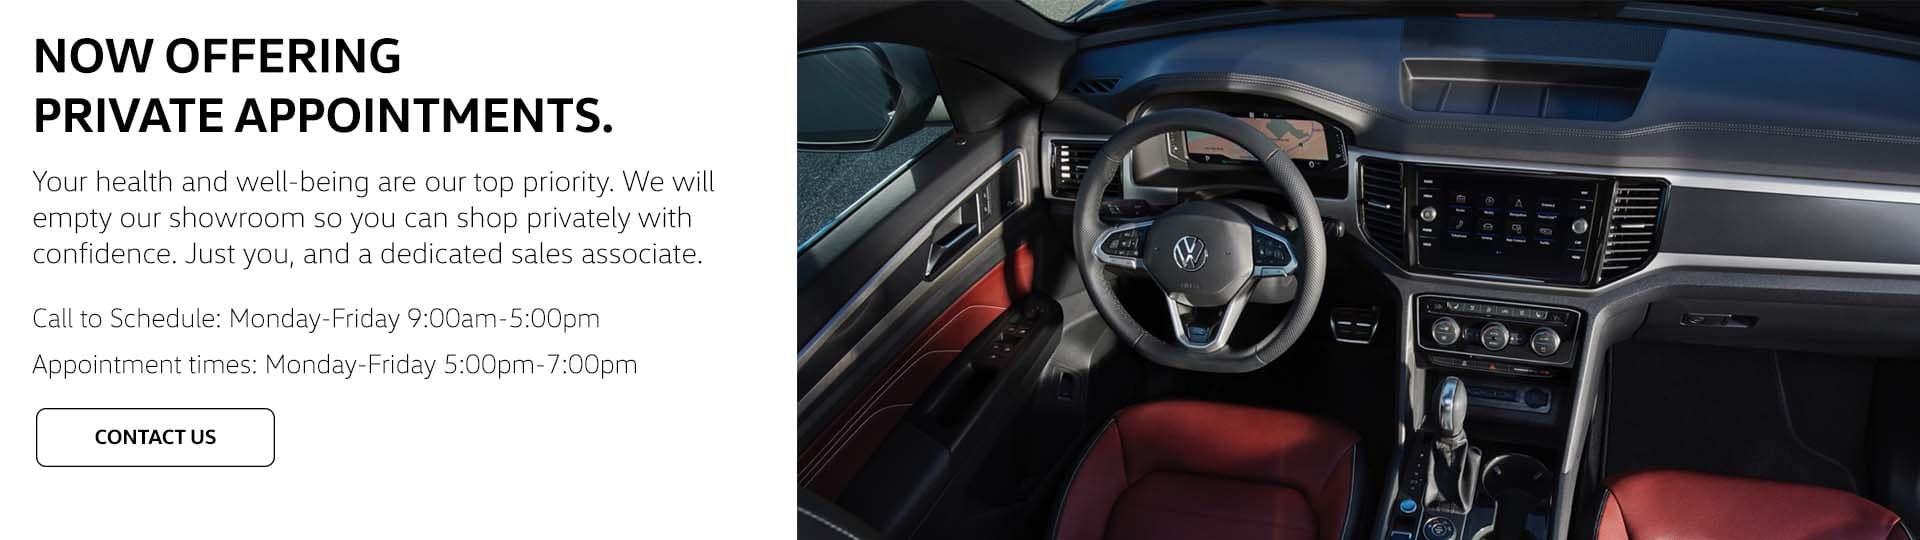 Volkswagen South Coast Appointment Slide